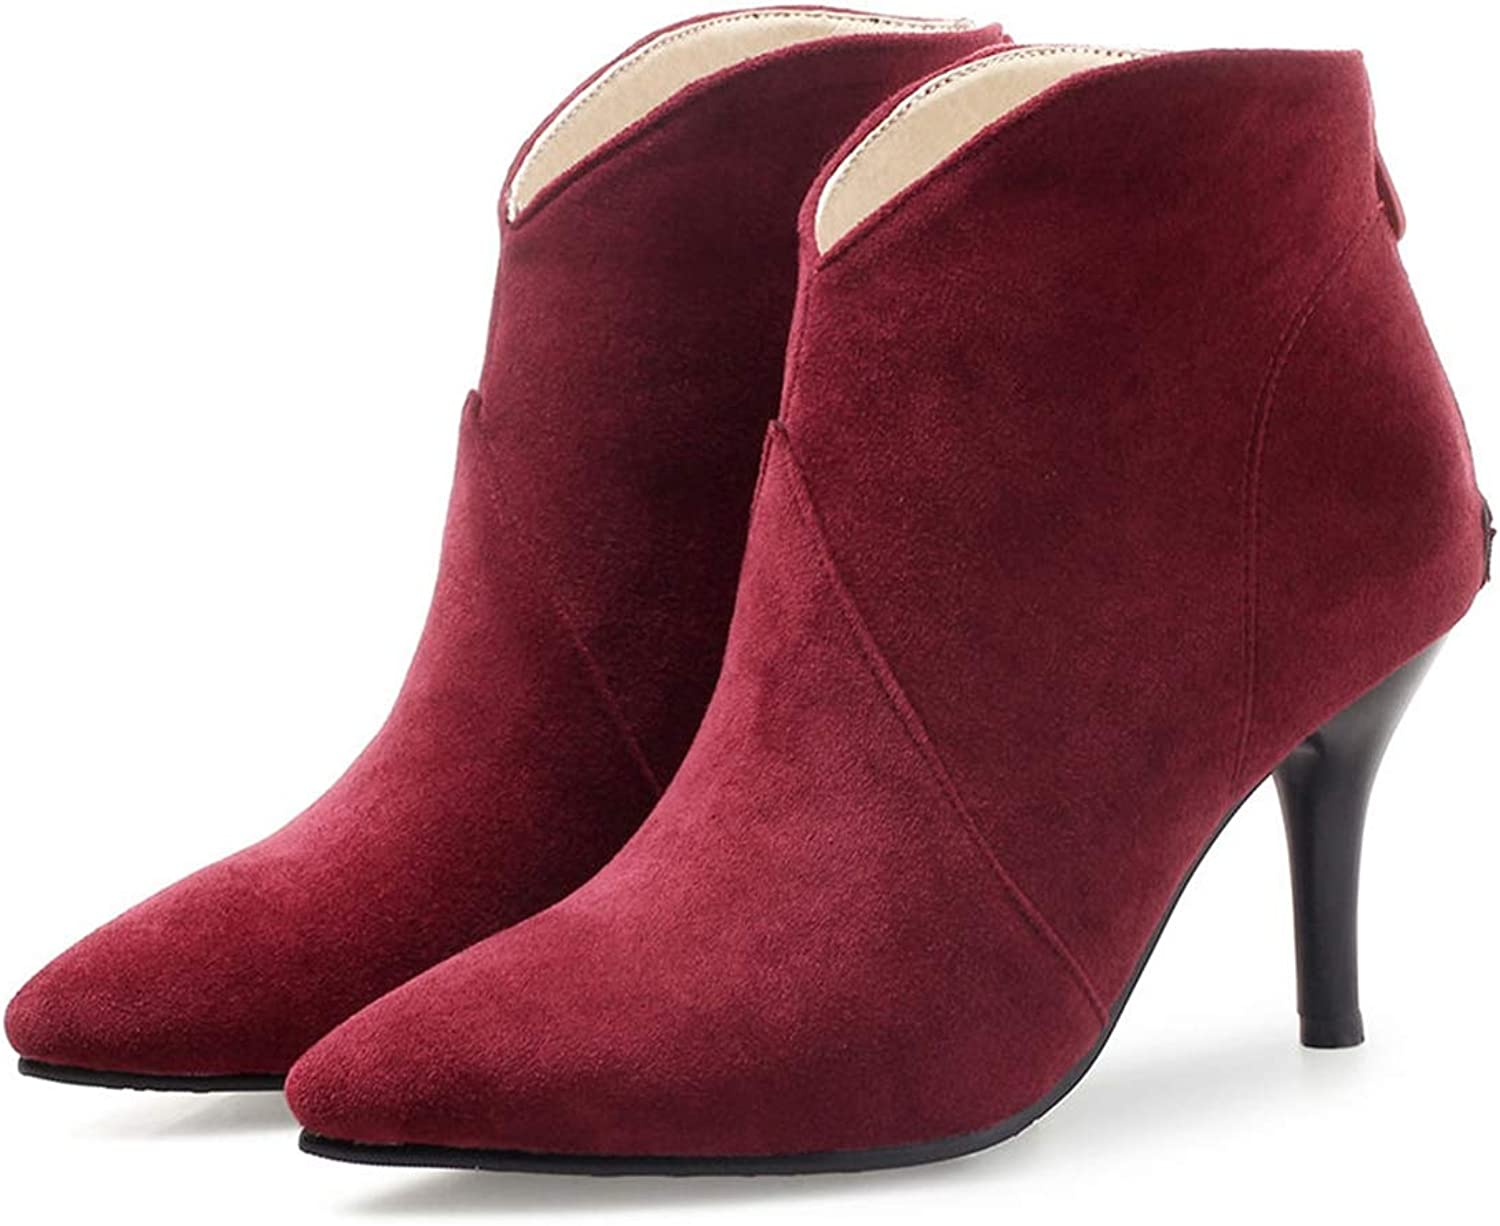 SENERY Women Winter Ankle Boots Fashion Flock Thin High Spike Heel Party Office Pointed Toe Zipper Booties